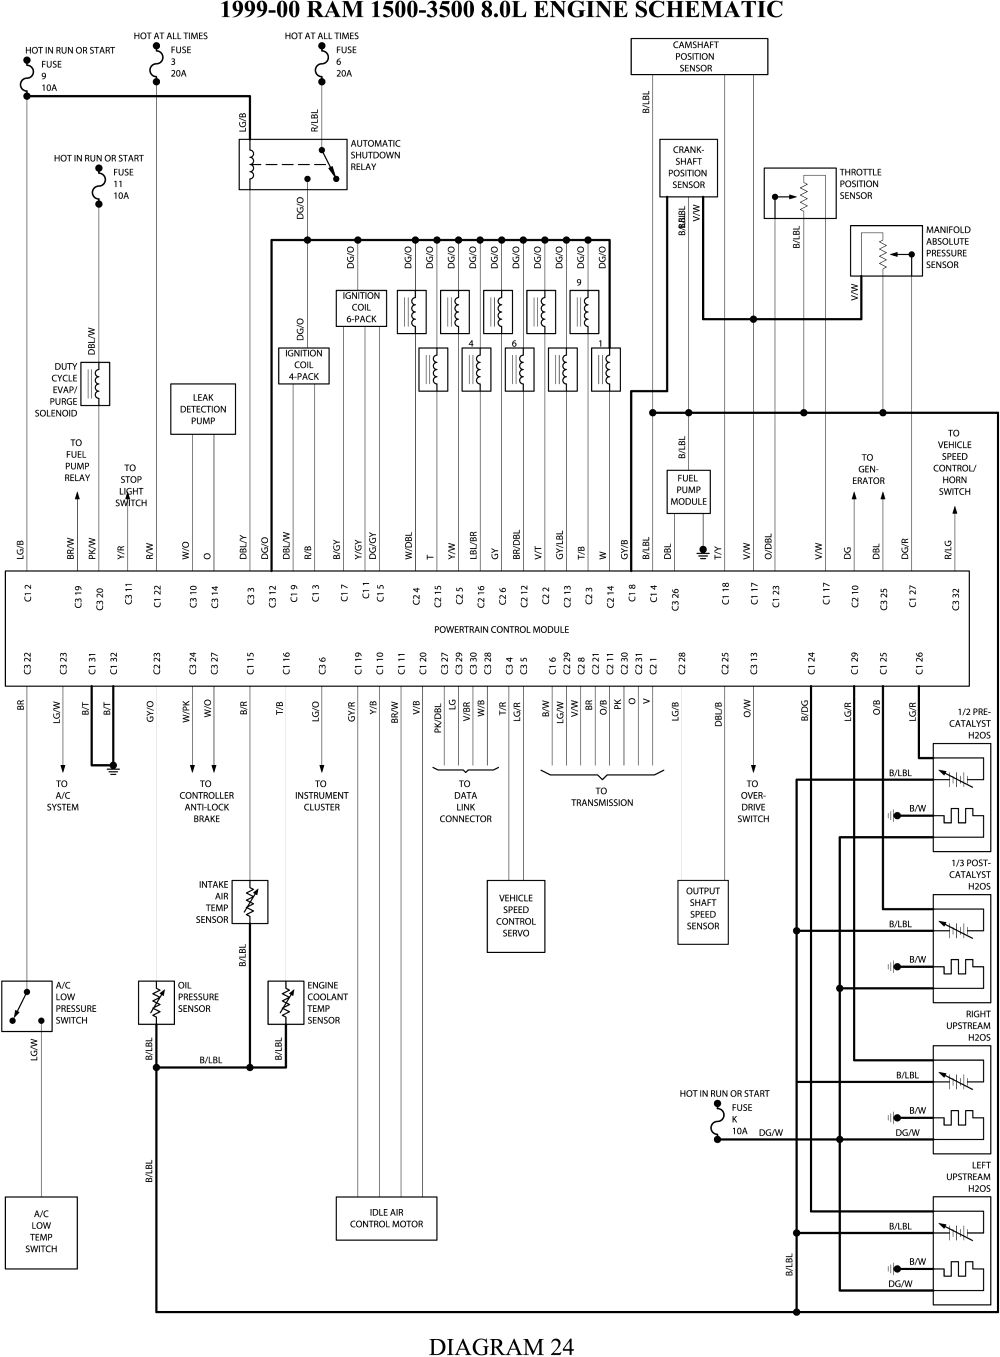 2002 dodge wiring diagram - data wiring diagram bored-pipe -  bored-pipe.vivarelliauto.it  vivarelliauto.it